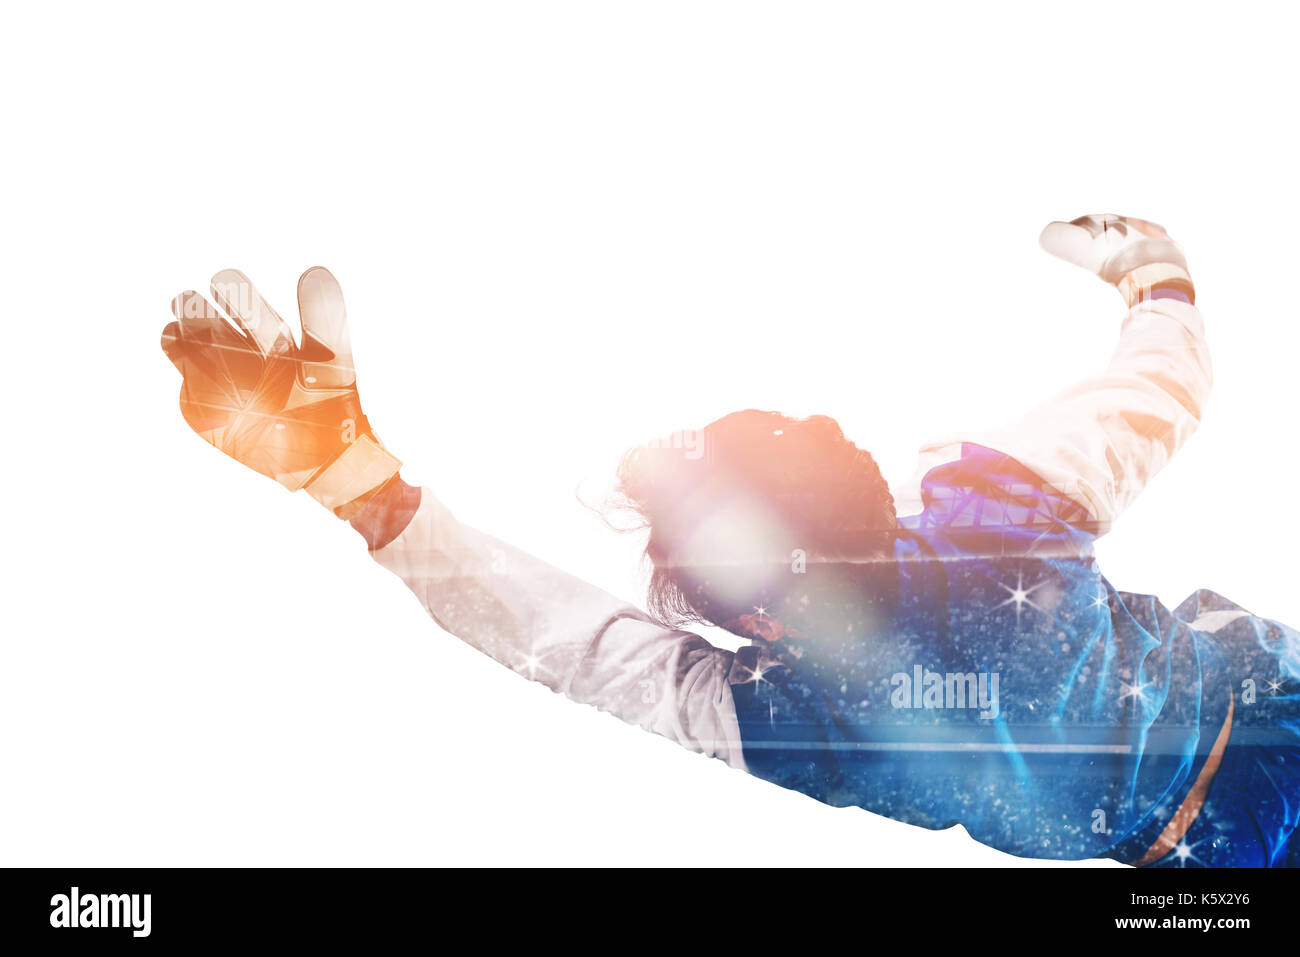 Diving goalkeeper with double exposure - Stock Image